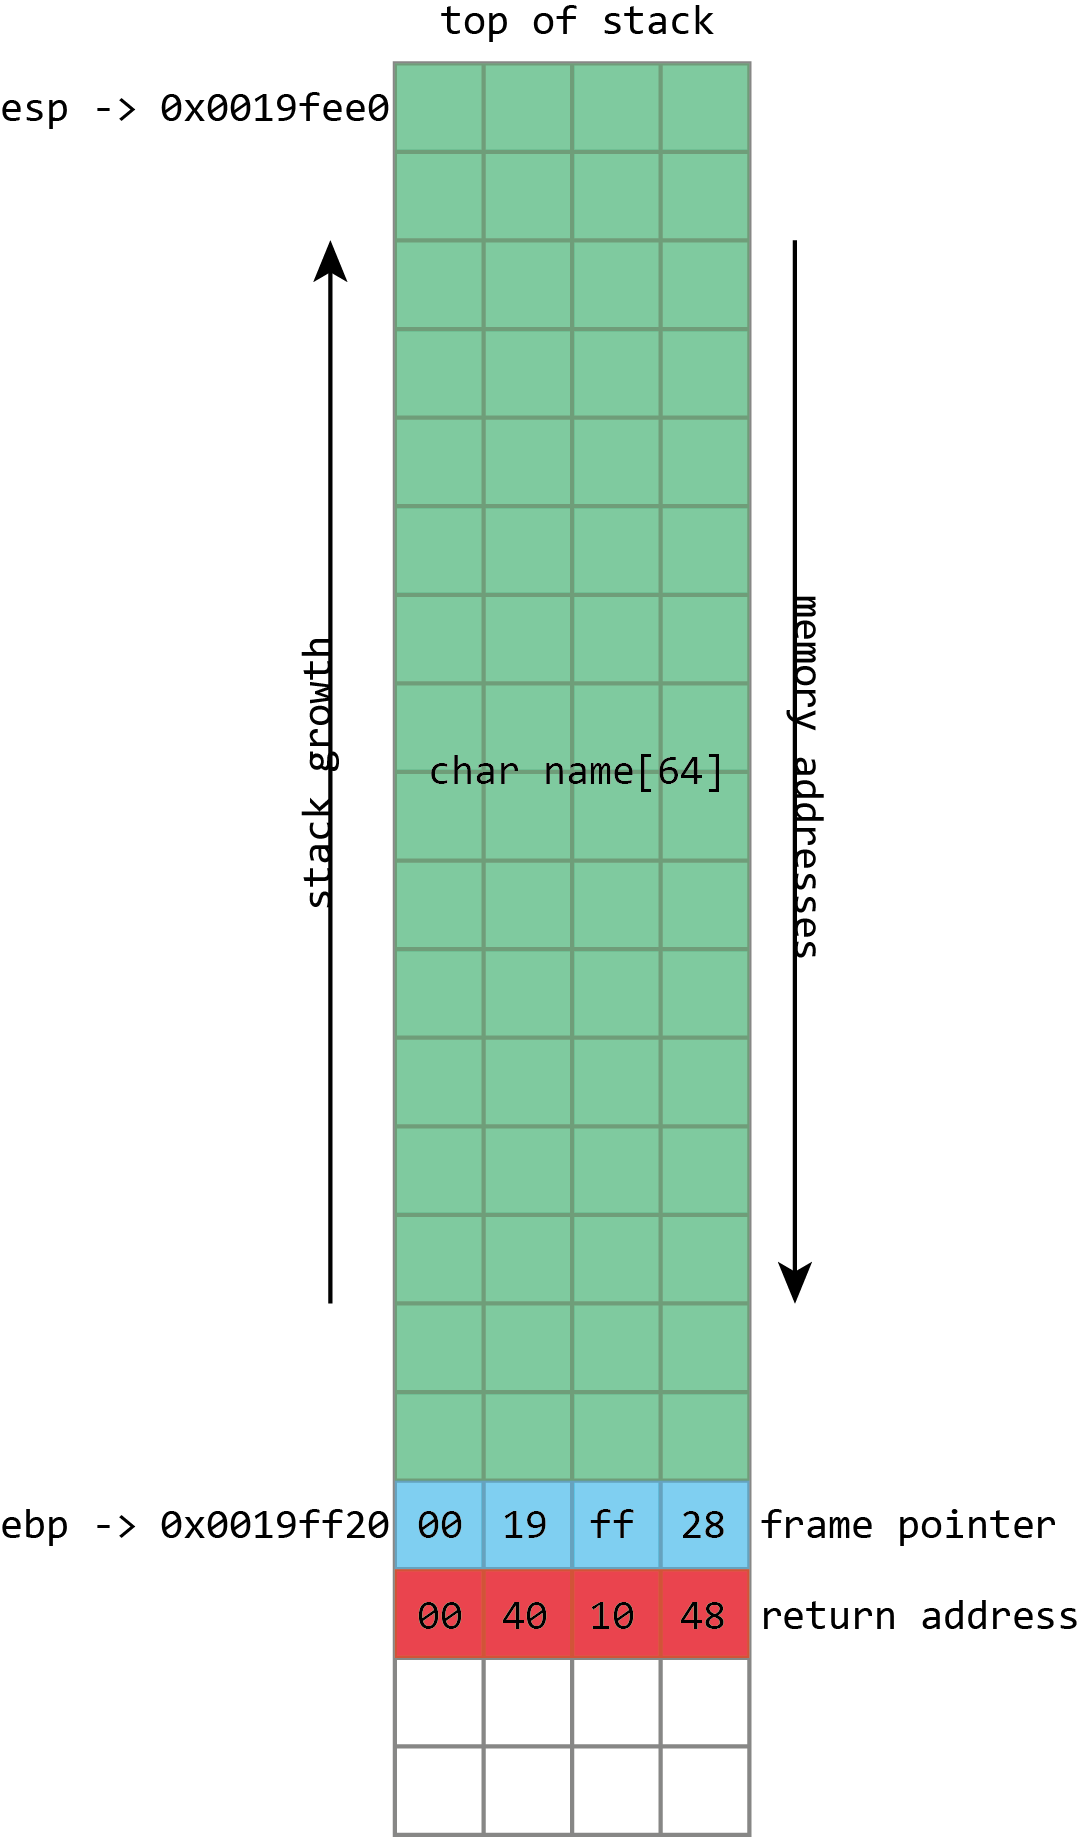 Here we see the basic layout of our stack with a 64 character buffer called <code>name</code>, then the frame pointer, and then the return address. <code>esp</code> has the address of the top of the stack, <code>ebp</code> has the address of the frame pointer.